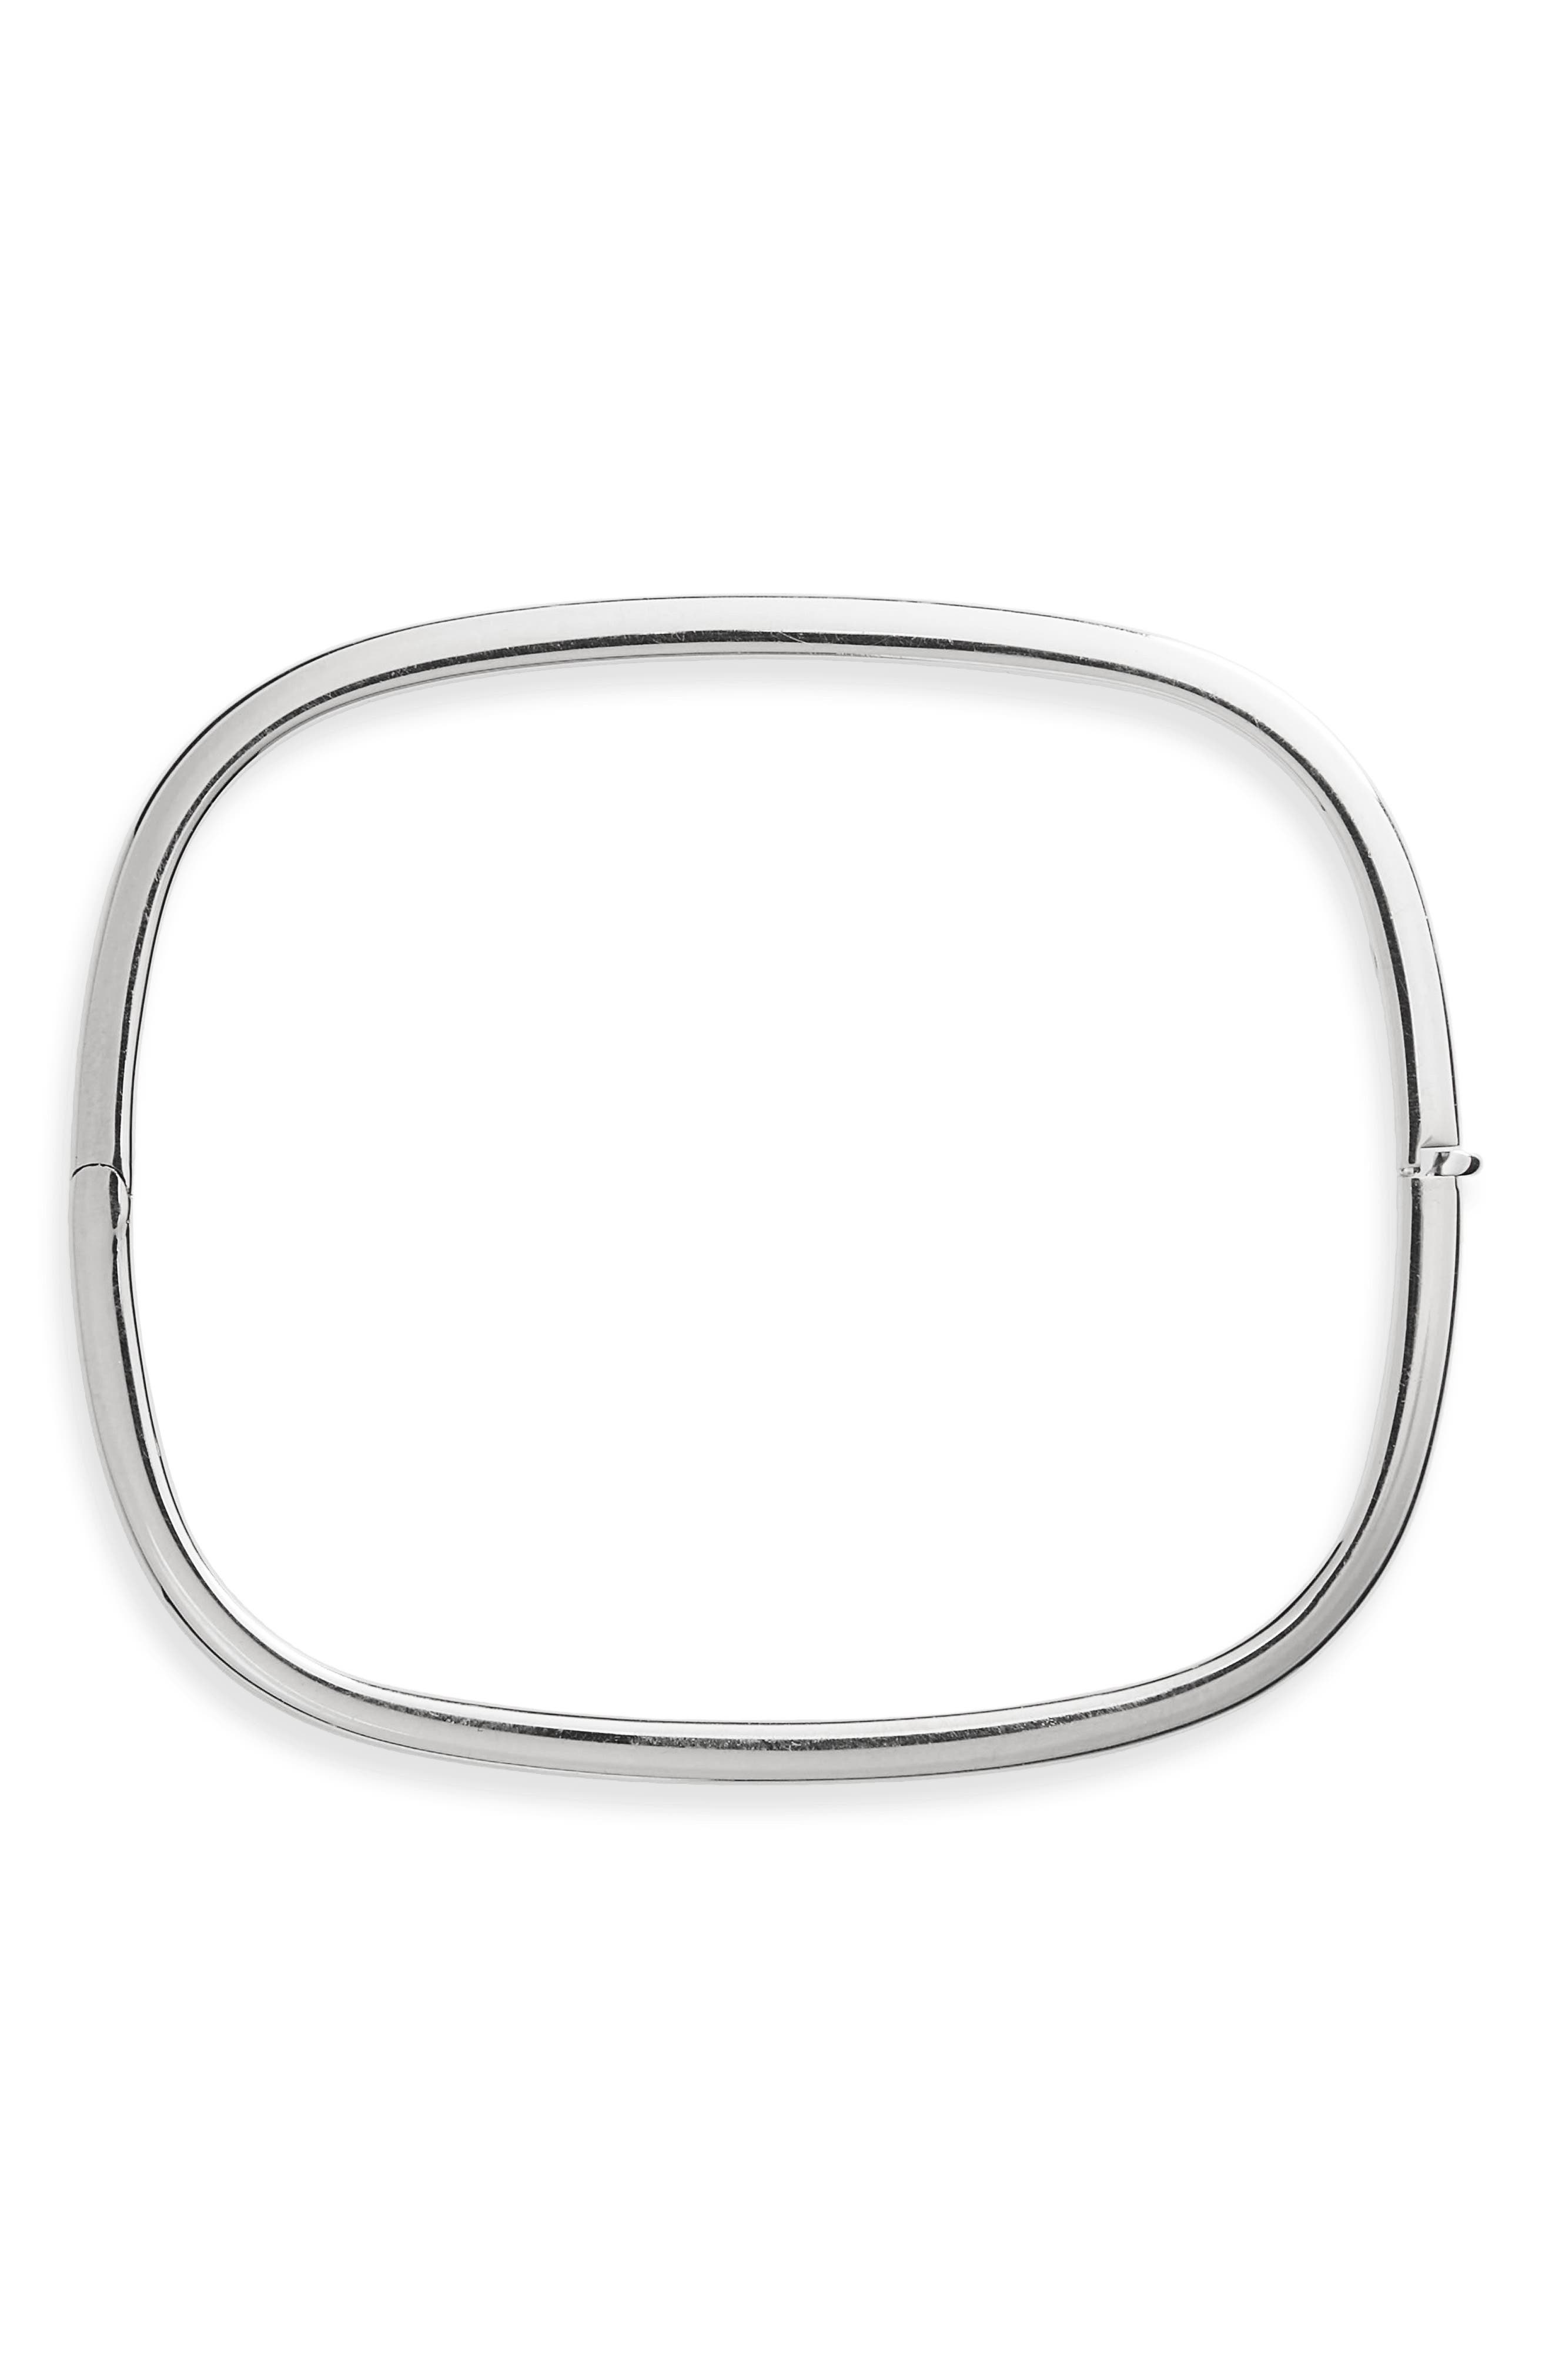 Soft Square Bangle Bracelet,                             Main thumbnail 1, color,                             WHITE GOLD